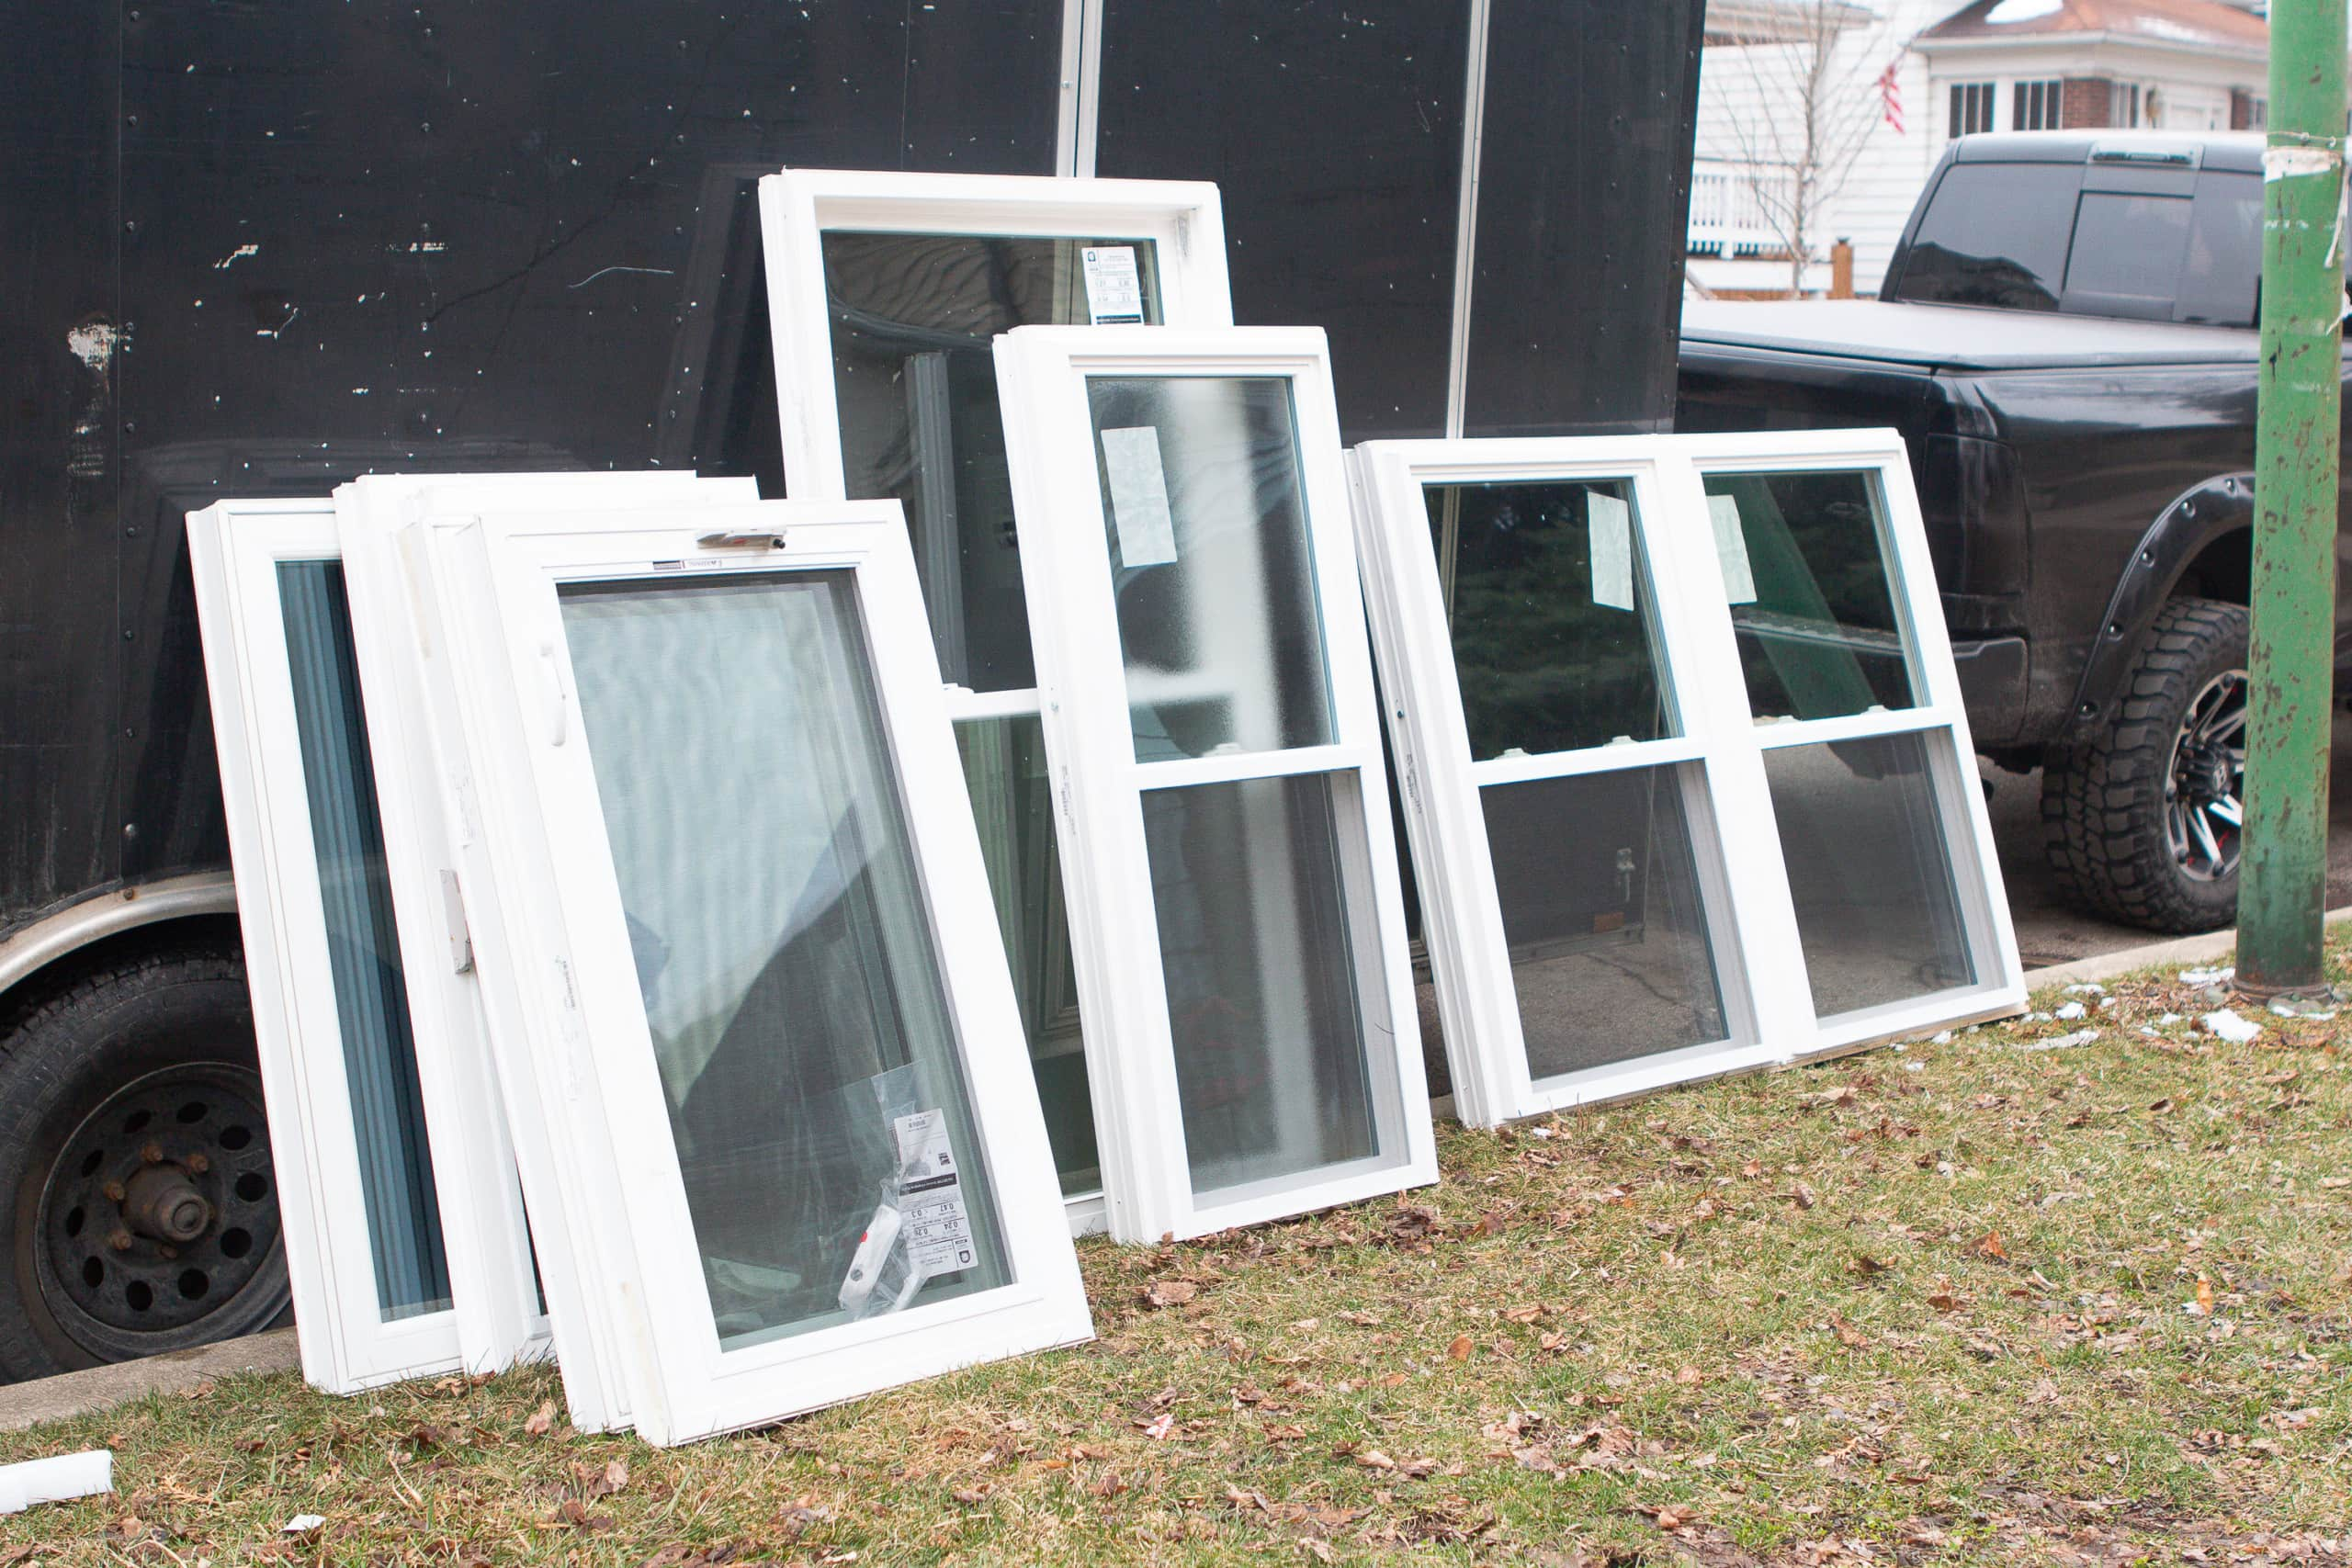 Our new windows